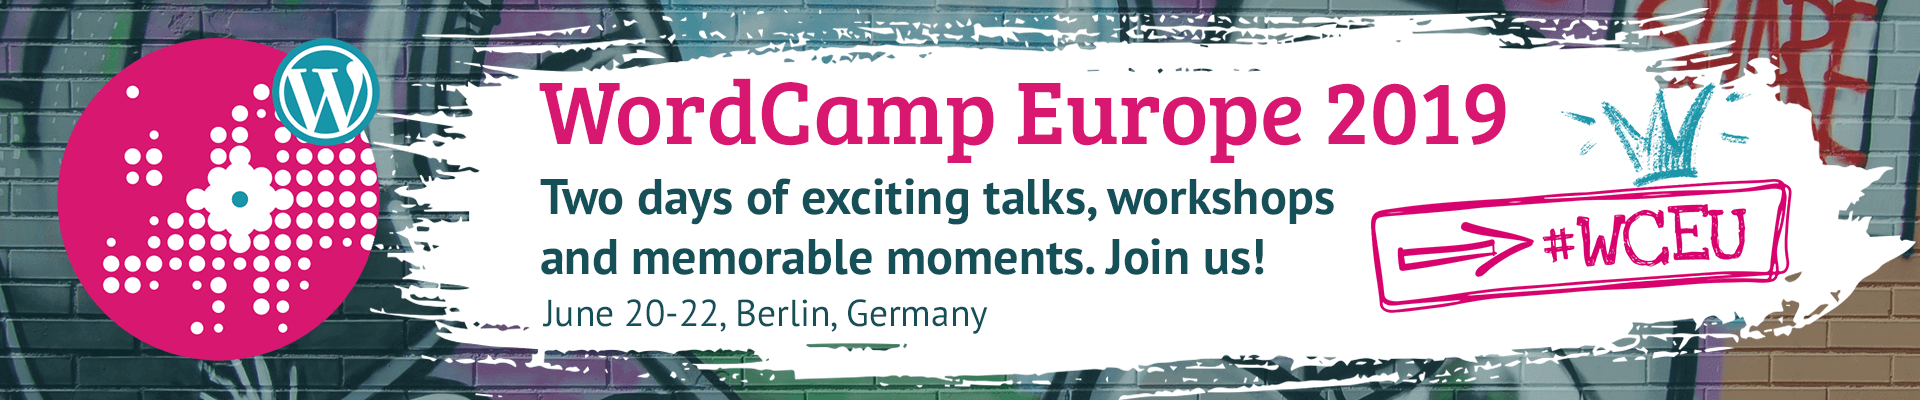 WordCamp EU 2019 in Berlin, Germany